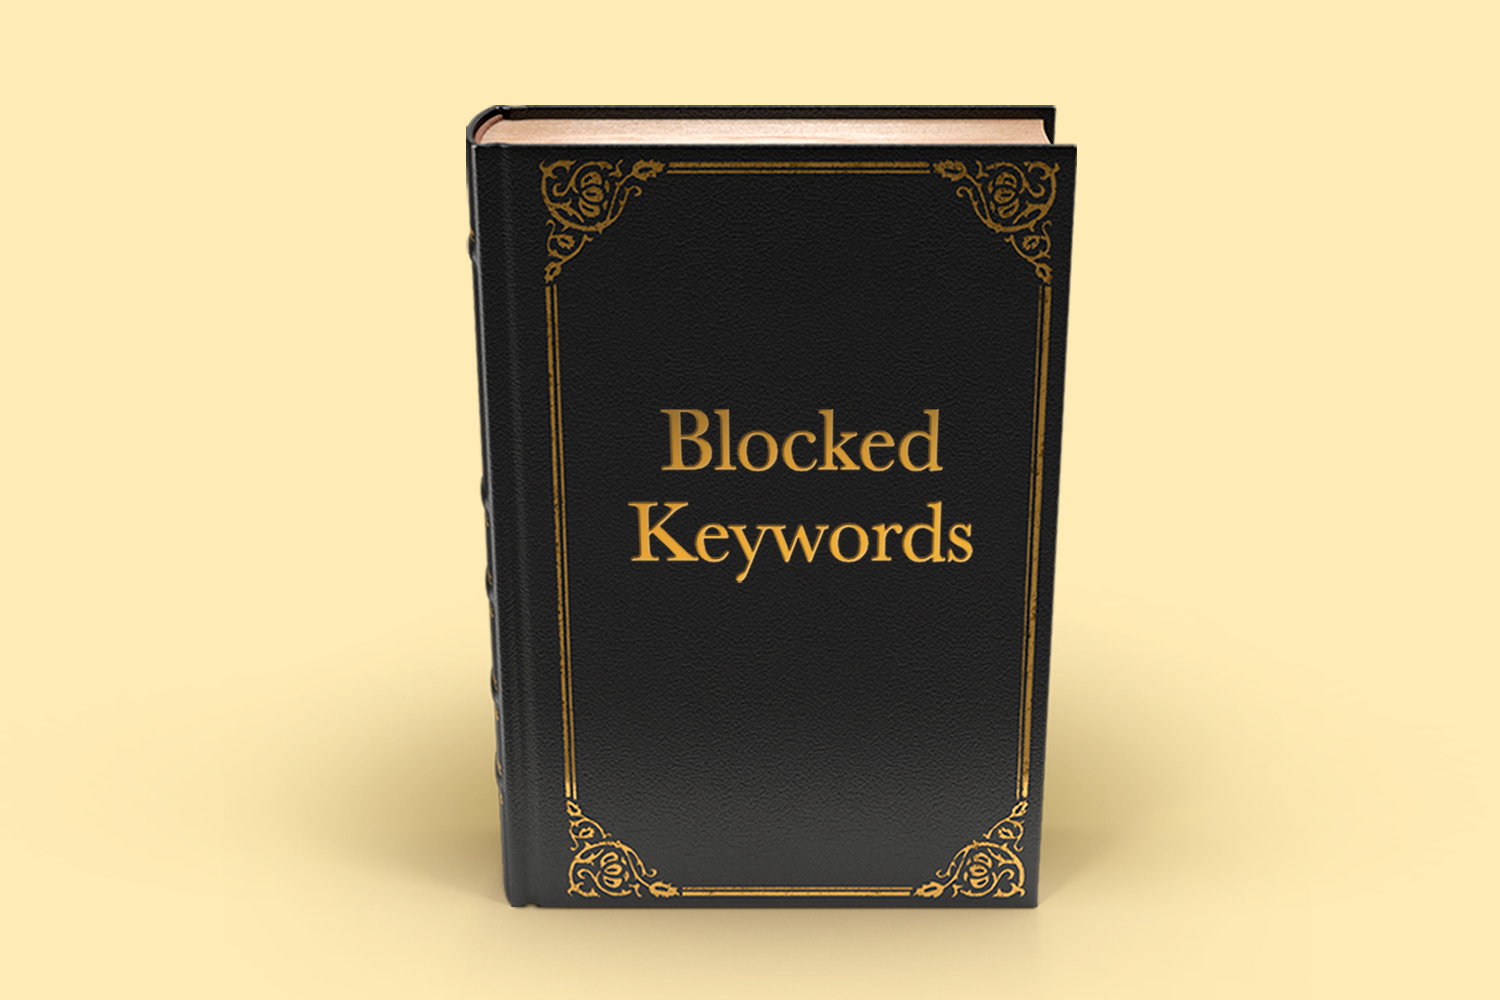 Capitol Riots: Why Marketers Shouldn't Rush to Keyword Blocking